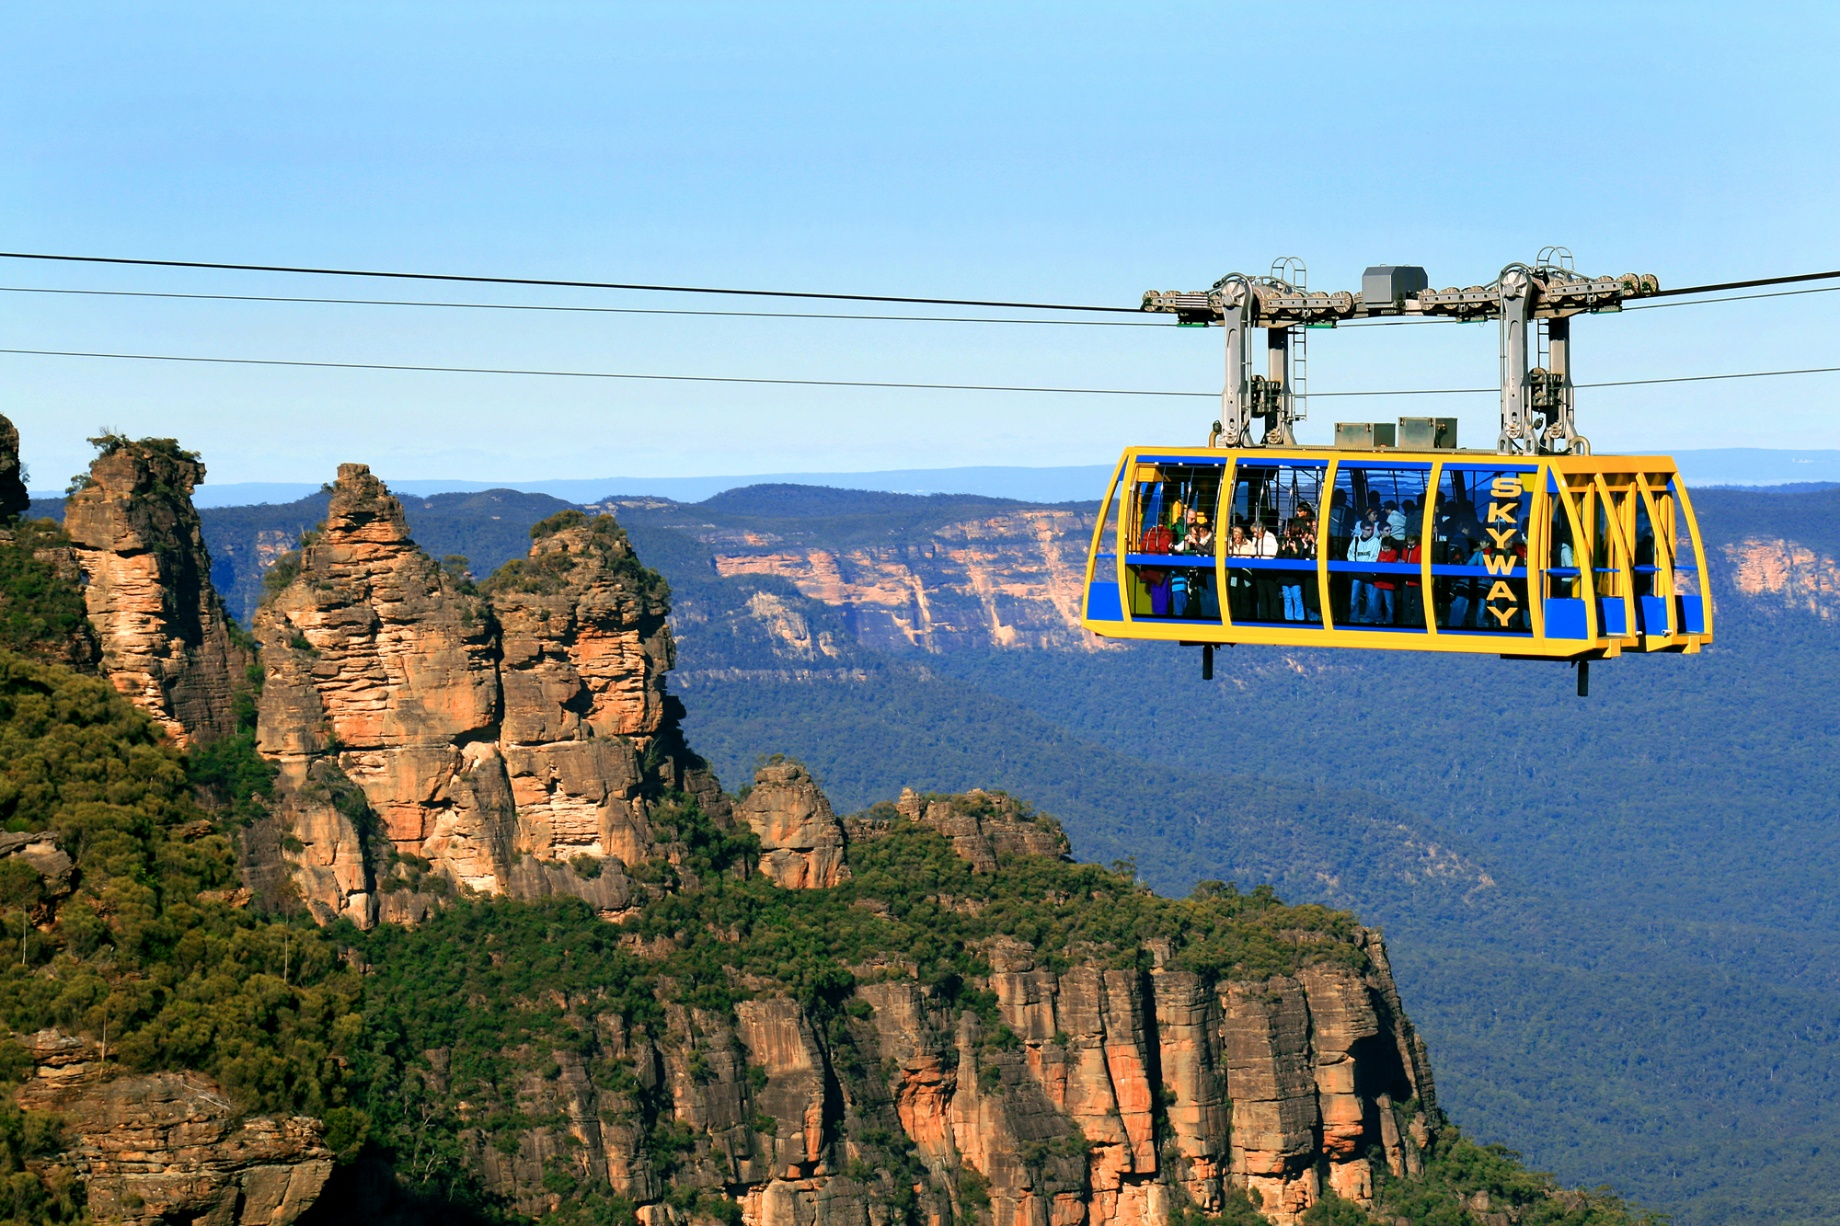 sydney blue mountains train - photo#16